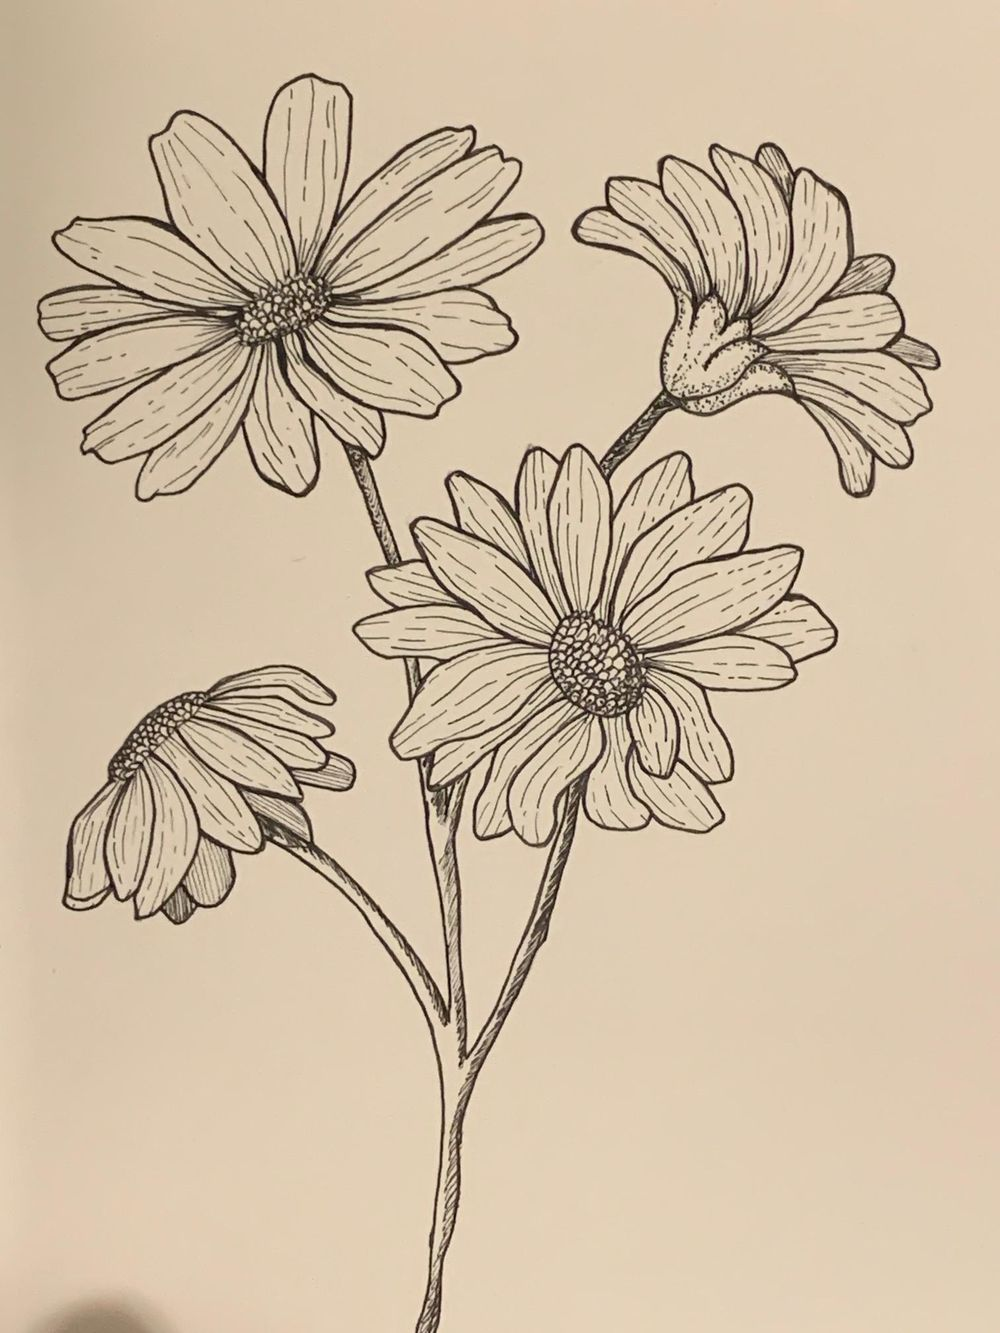 Flower drawing - image 2 - student project